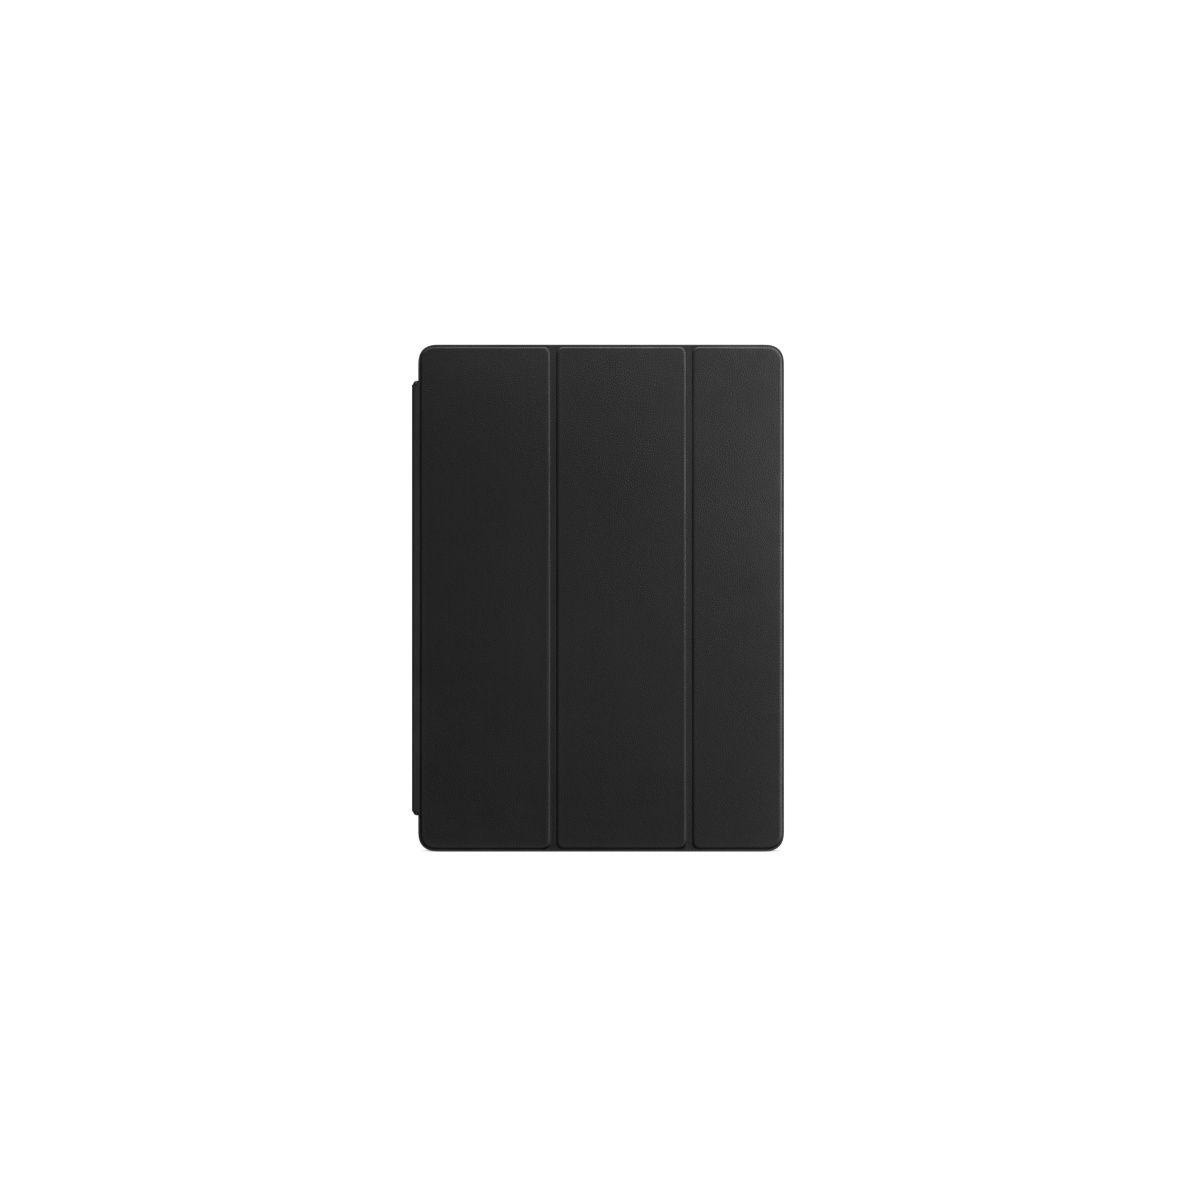 Folio apple smart cover ipad pro 12.9 cu - livraison offerte : code chronoff (photo)